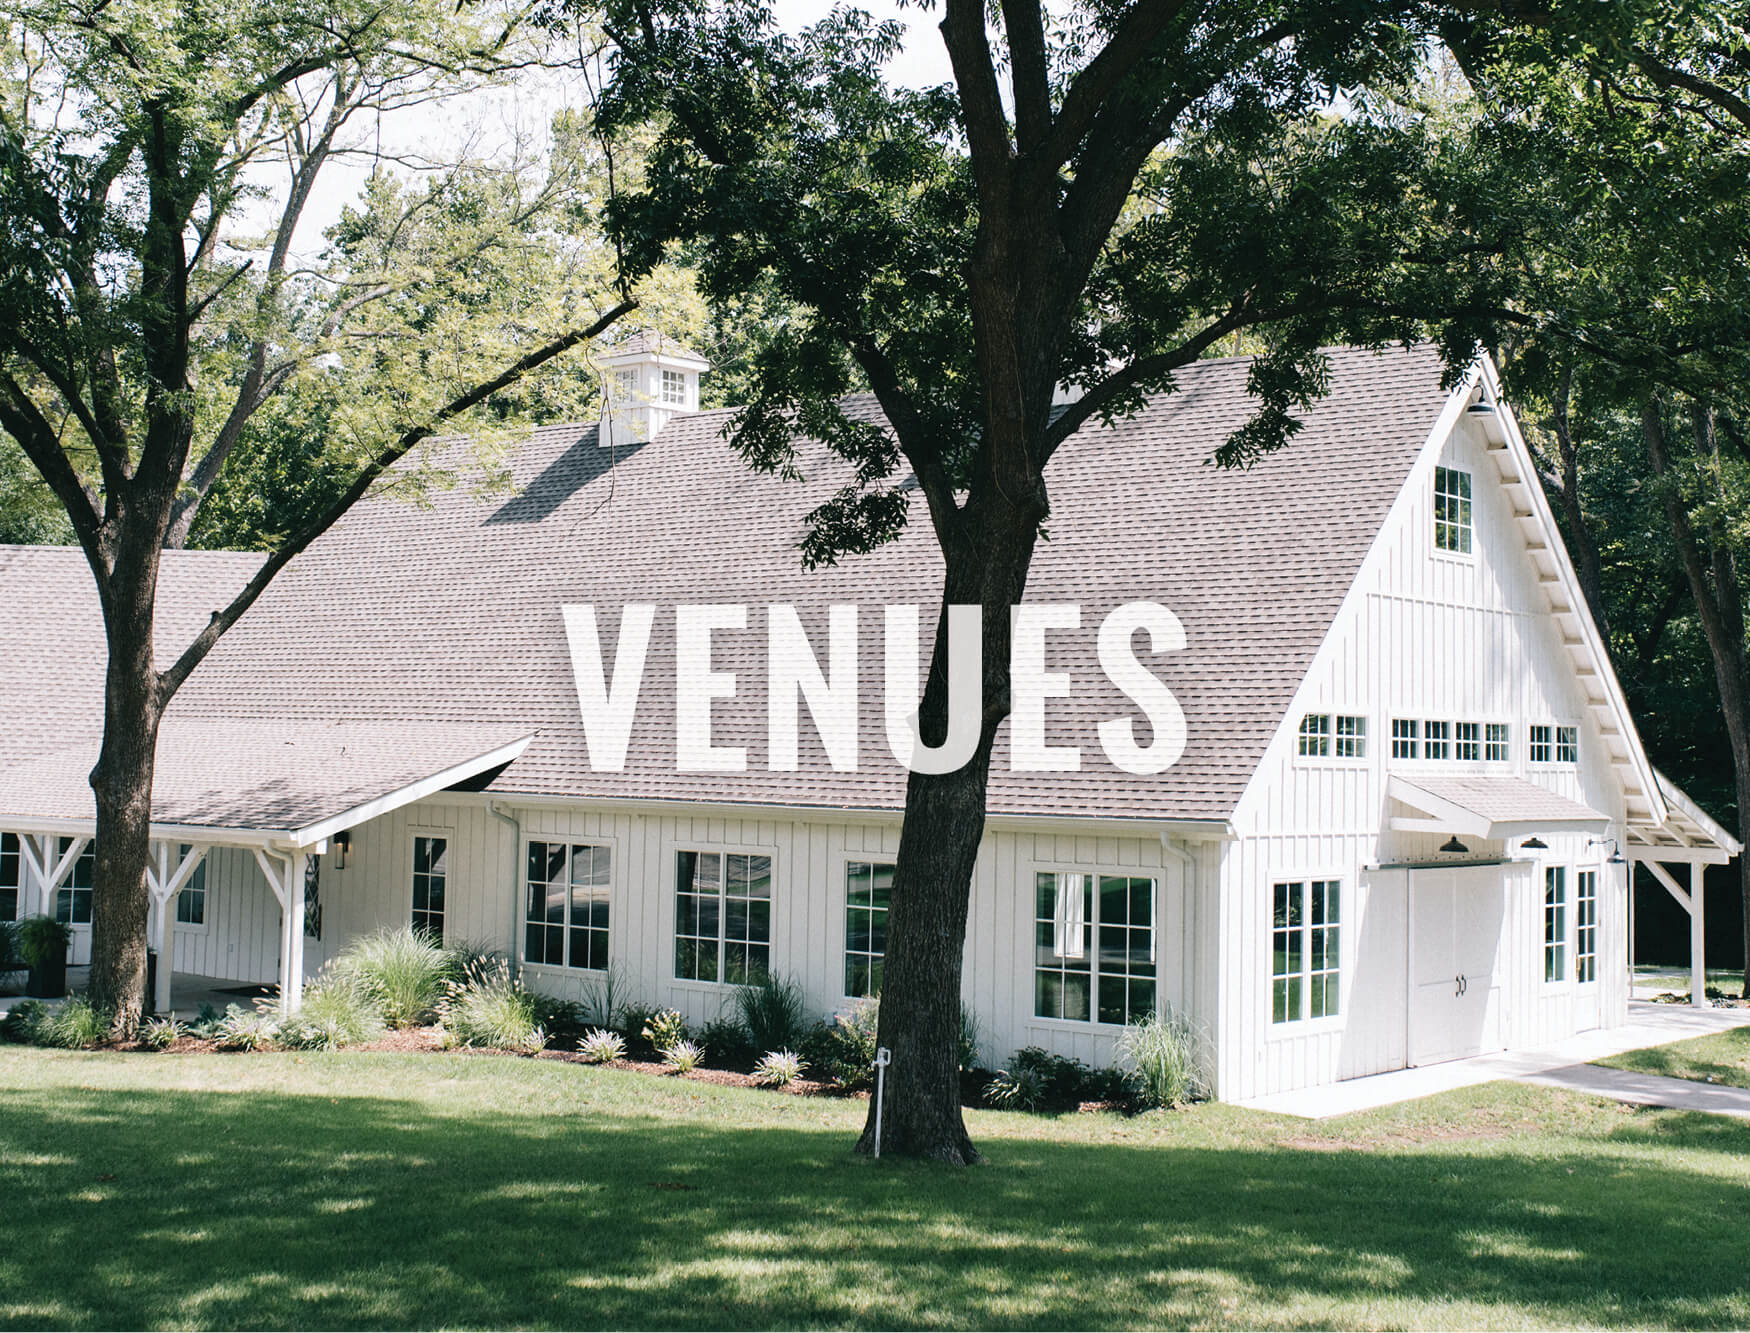 Venues_category